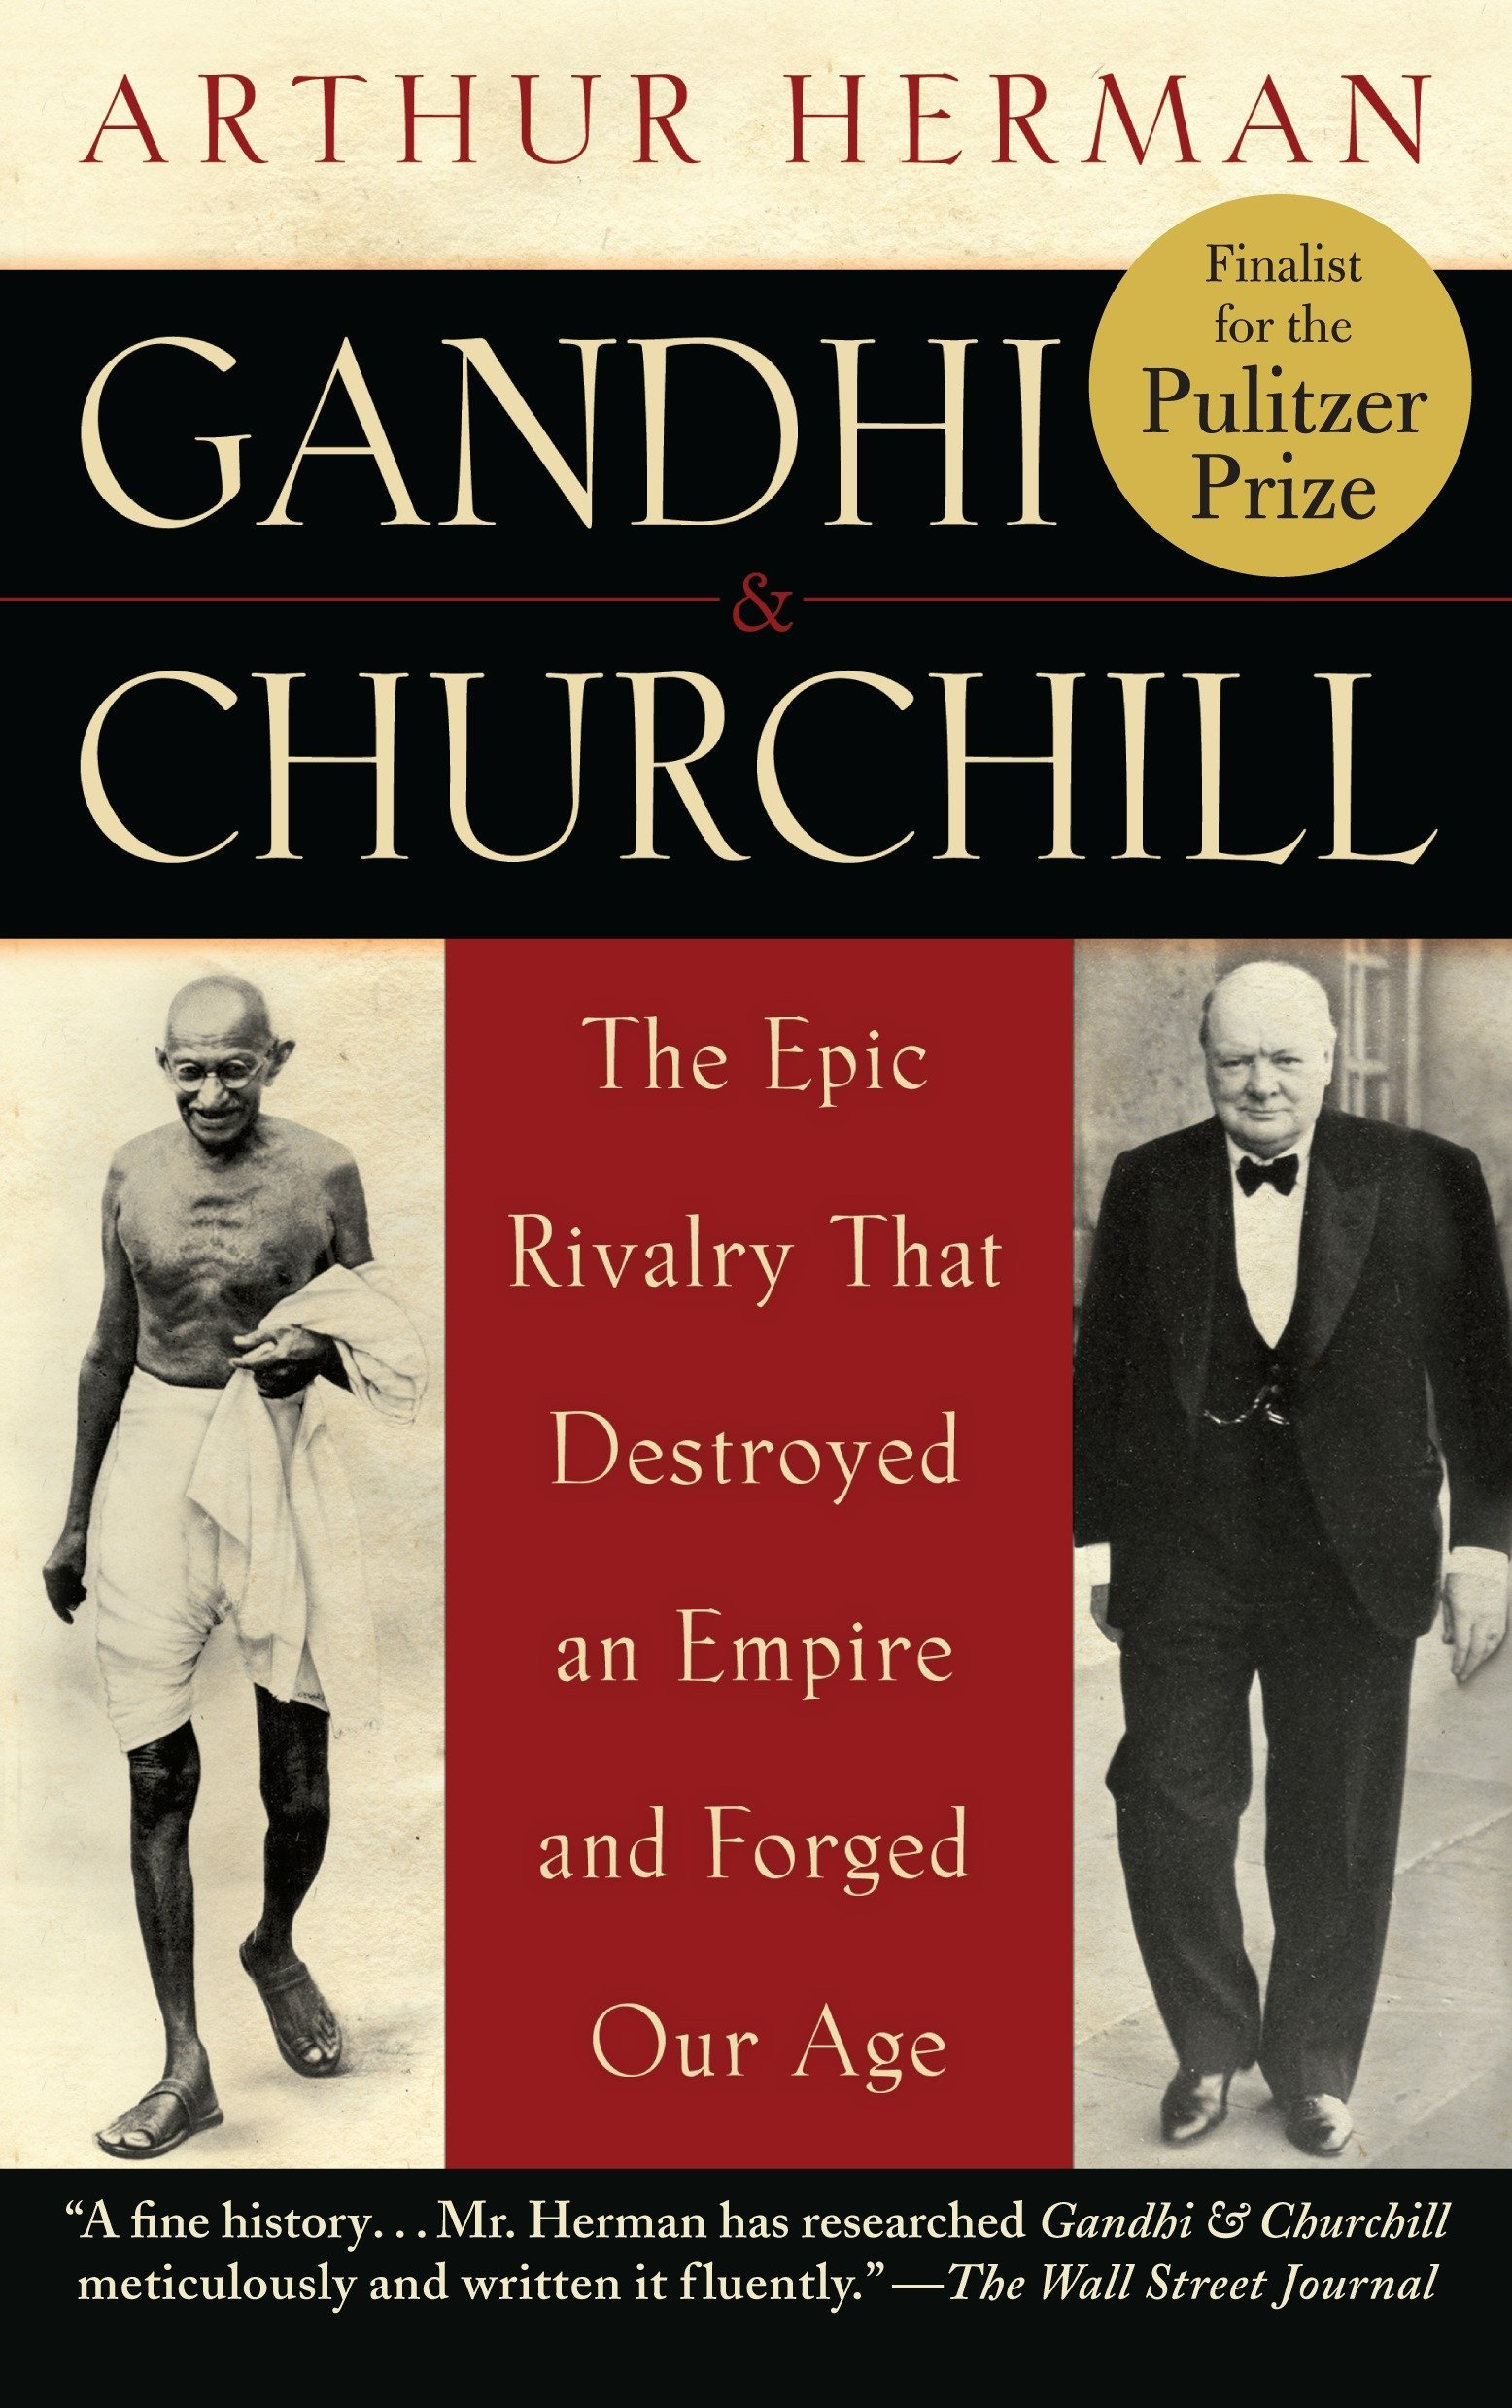 Gandhi & Churchill: The Epic Rivalry That Destroyed an Empire and Forged Our Age: Amazon.es: Arthur Herman: Libros en idiomas extranjeros